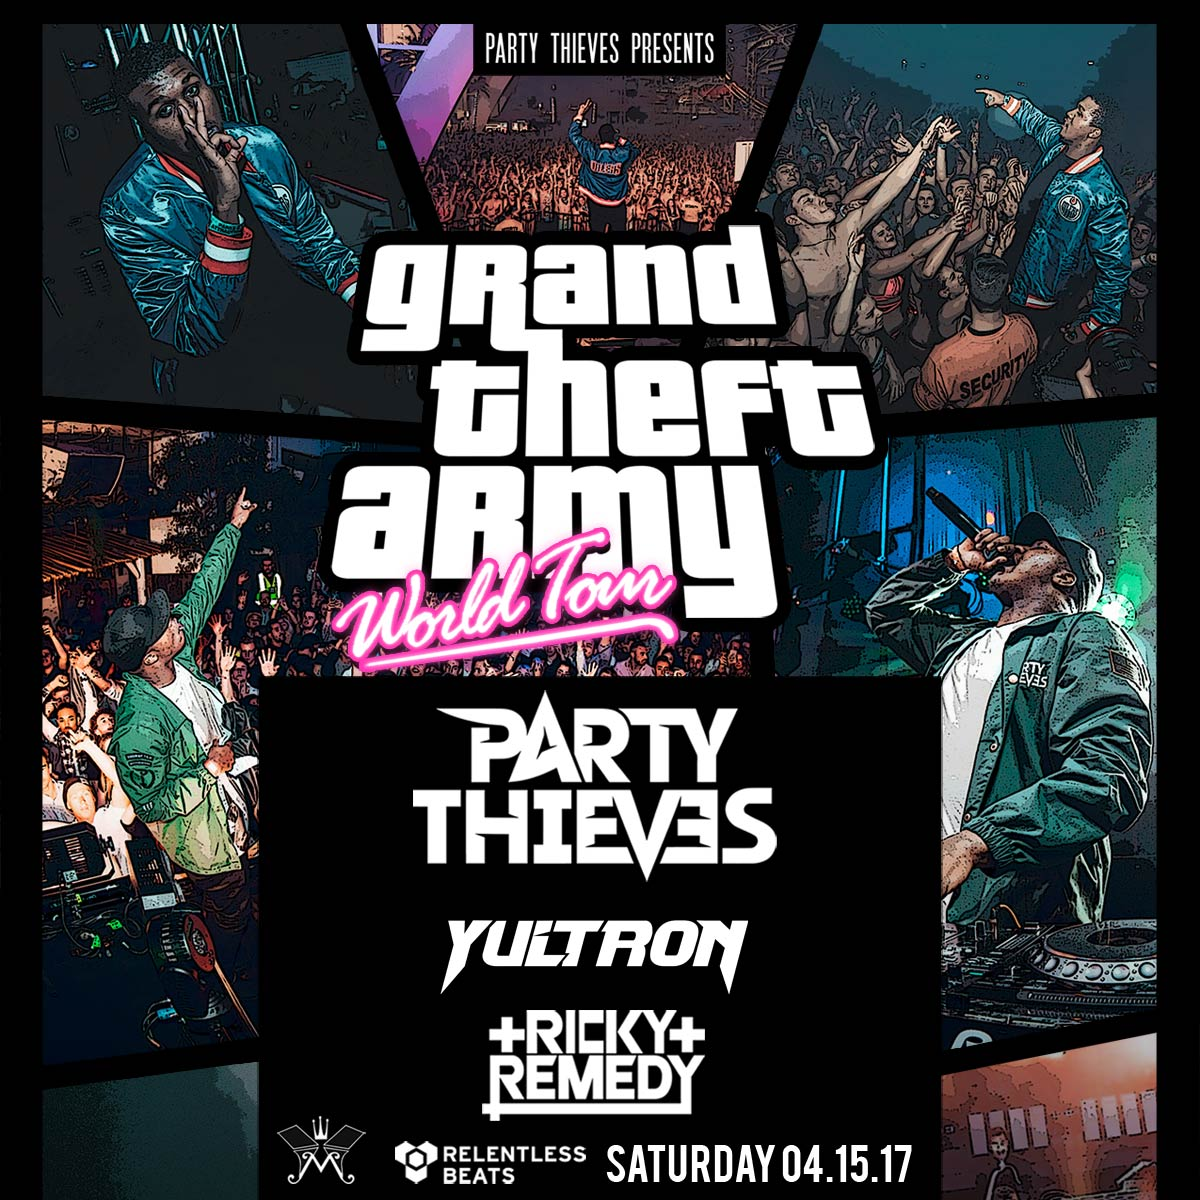 Flyer for Party Thieves, Yultron, & Ricky Remedy